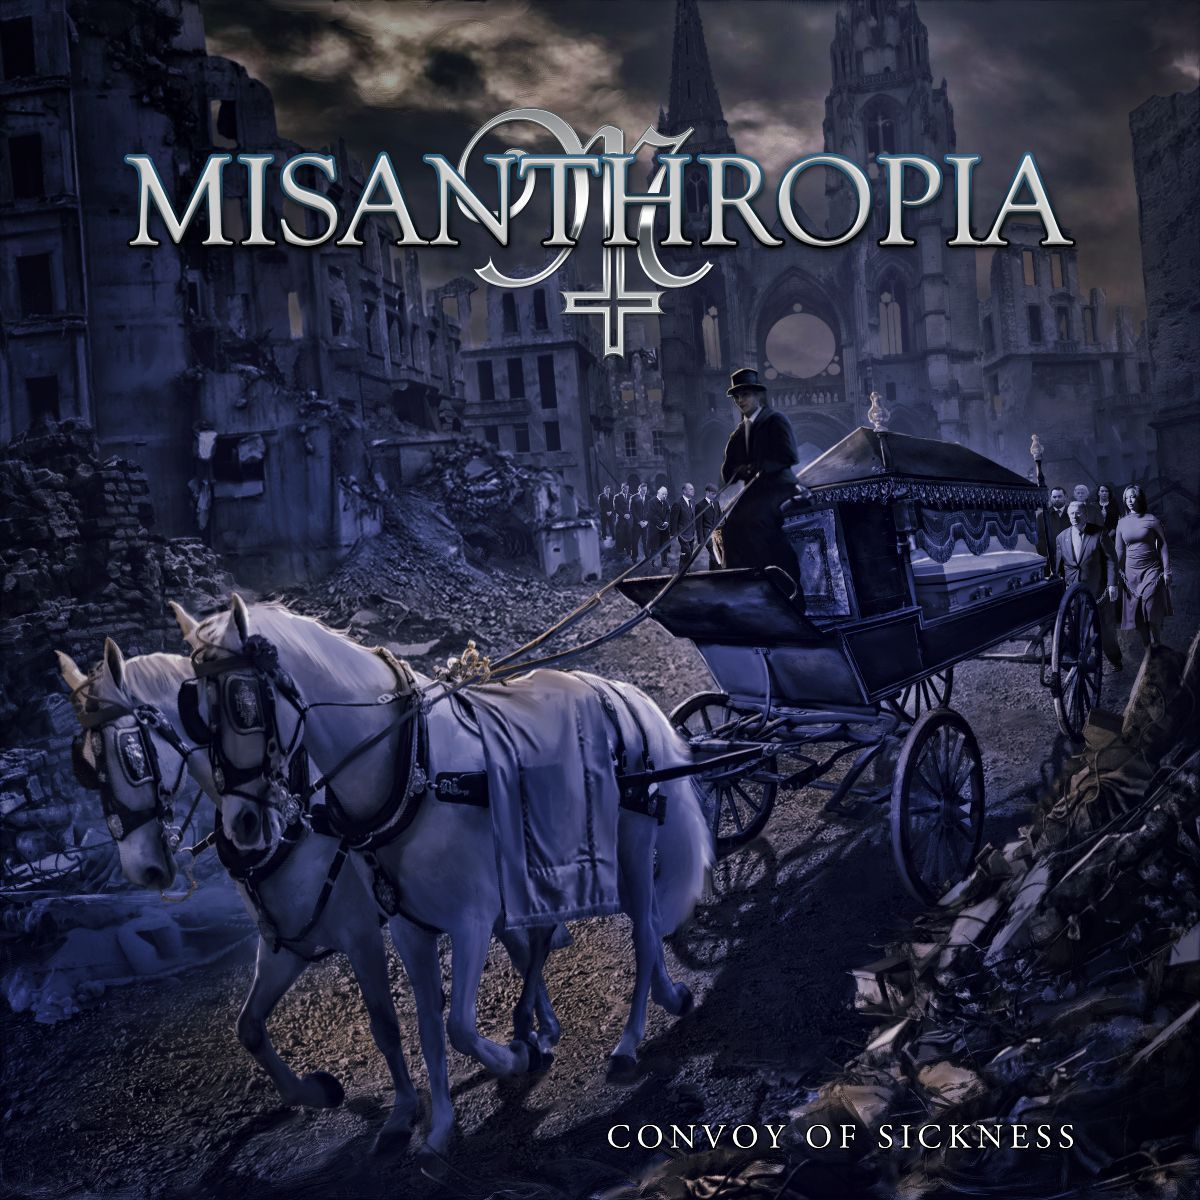 misanthropia - convoy of sickness - album cover